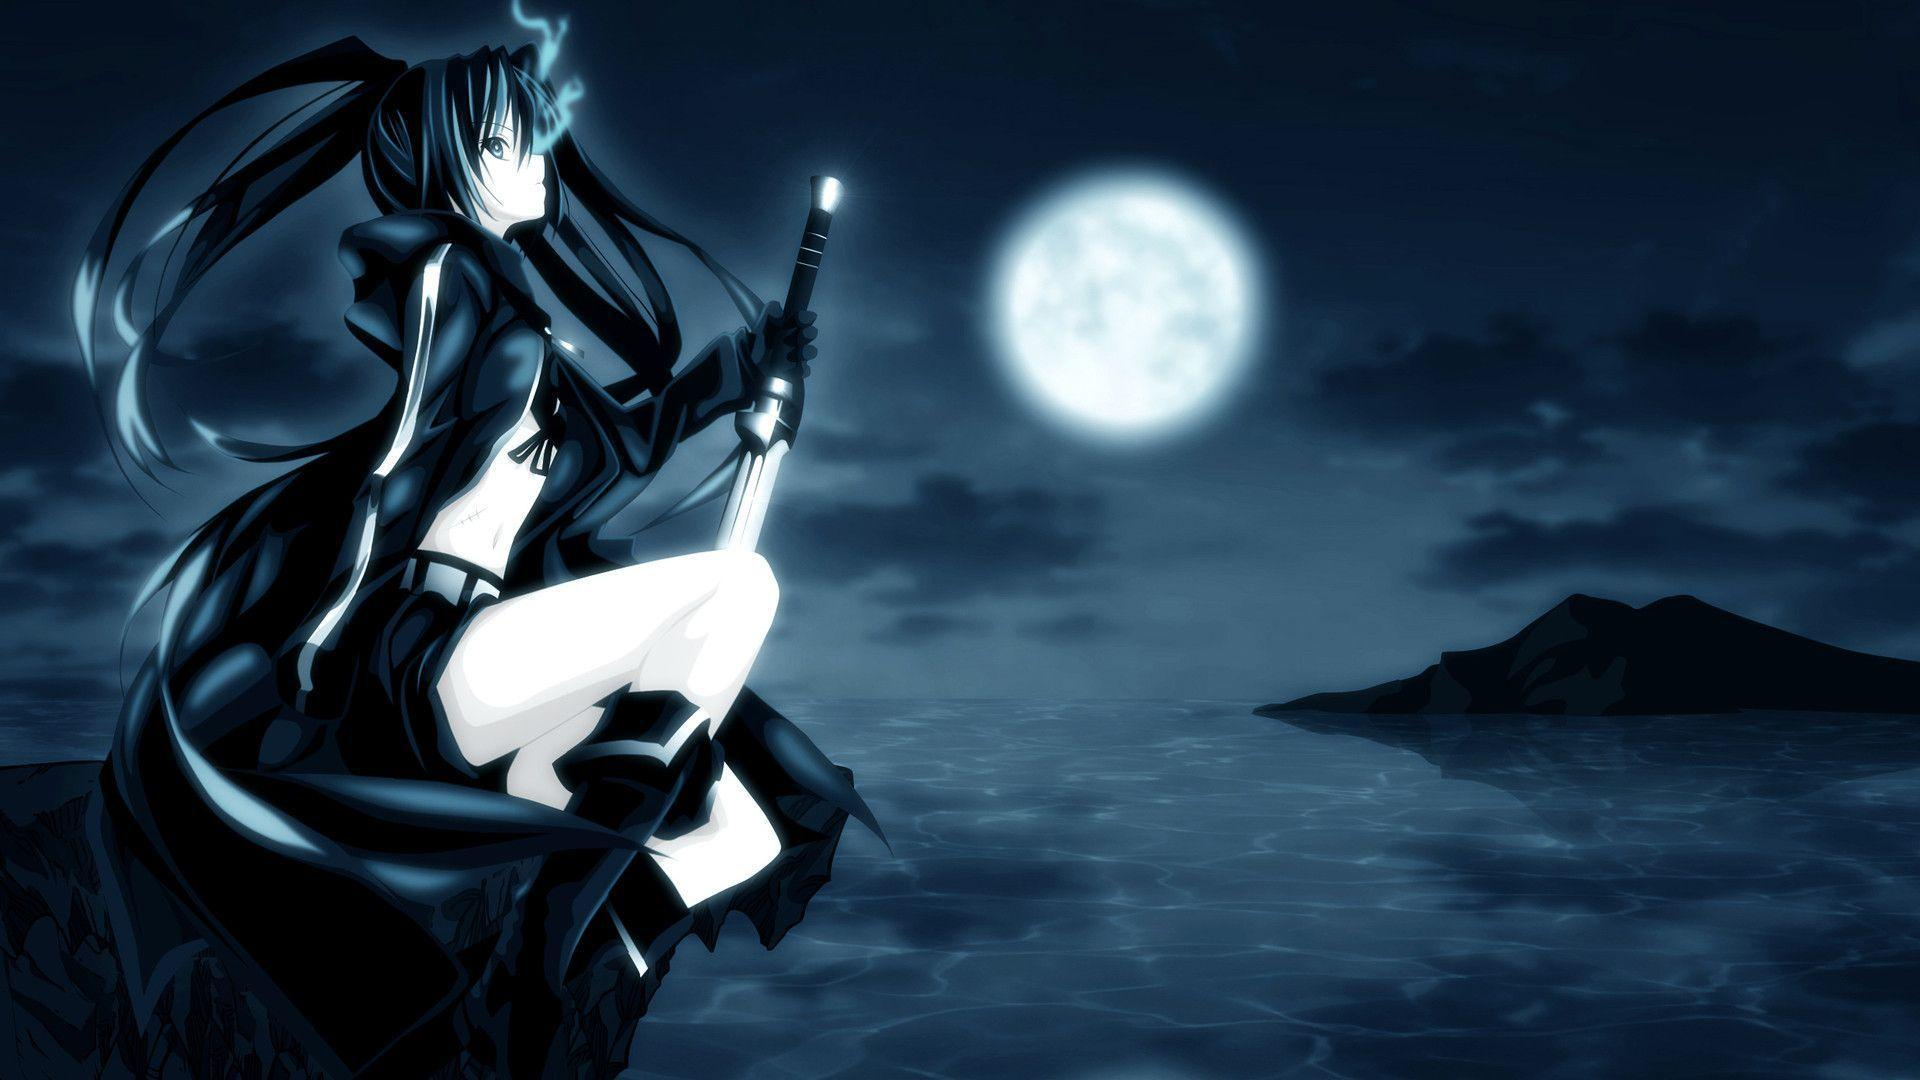 1920x1080 Anime Wallpapers - Wallpaper Cave Hd Wallpapers 1920x1080 Anime